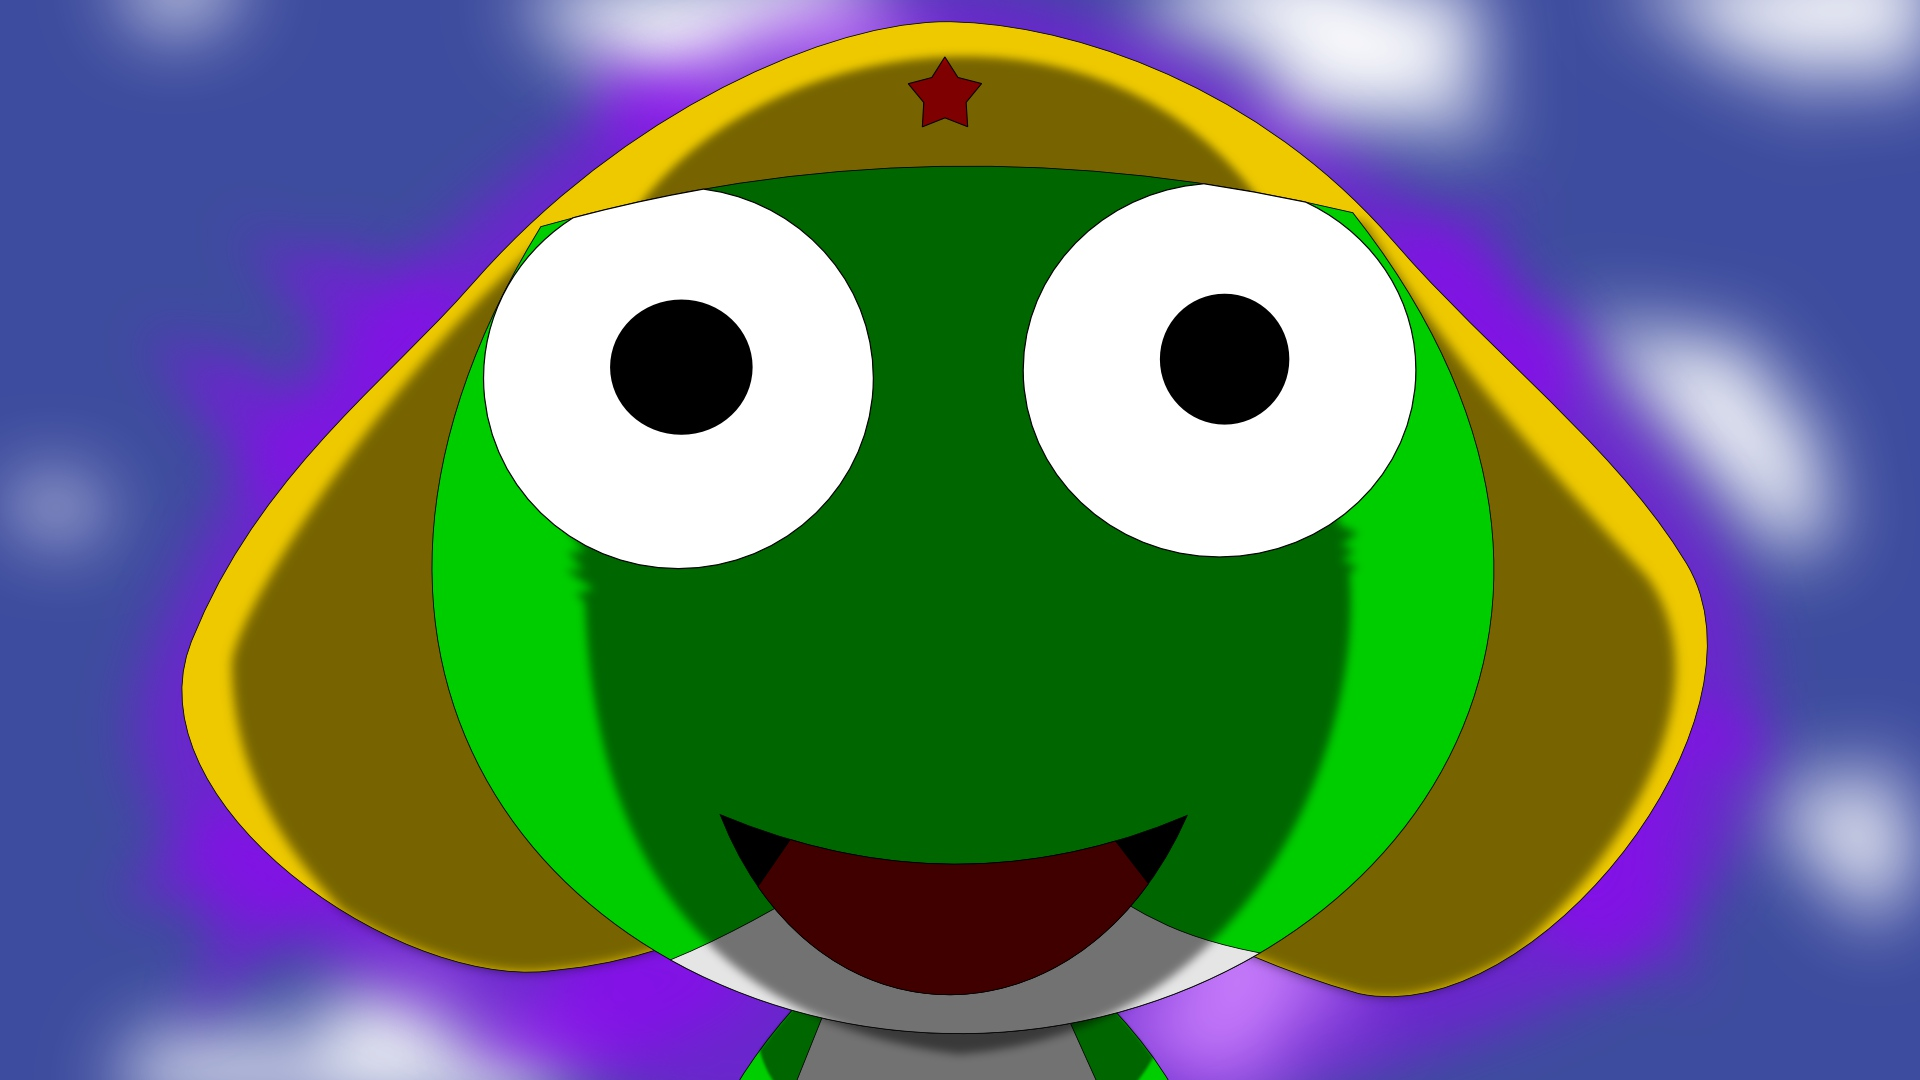 close keroro_gunsou sergeant_keroro vector